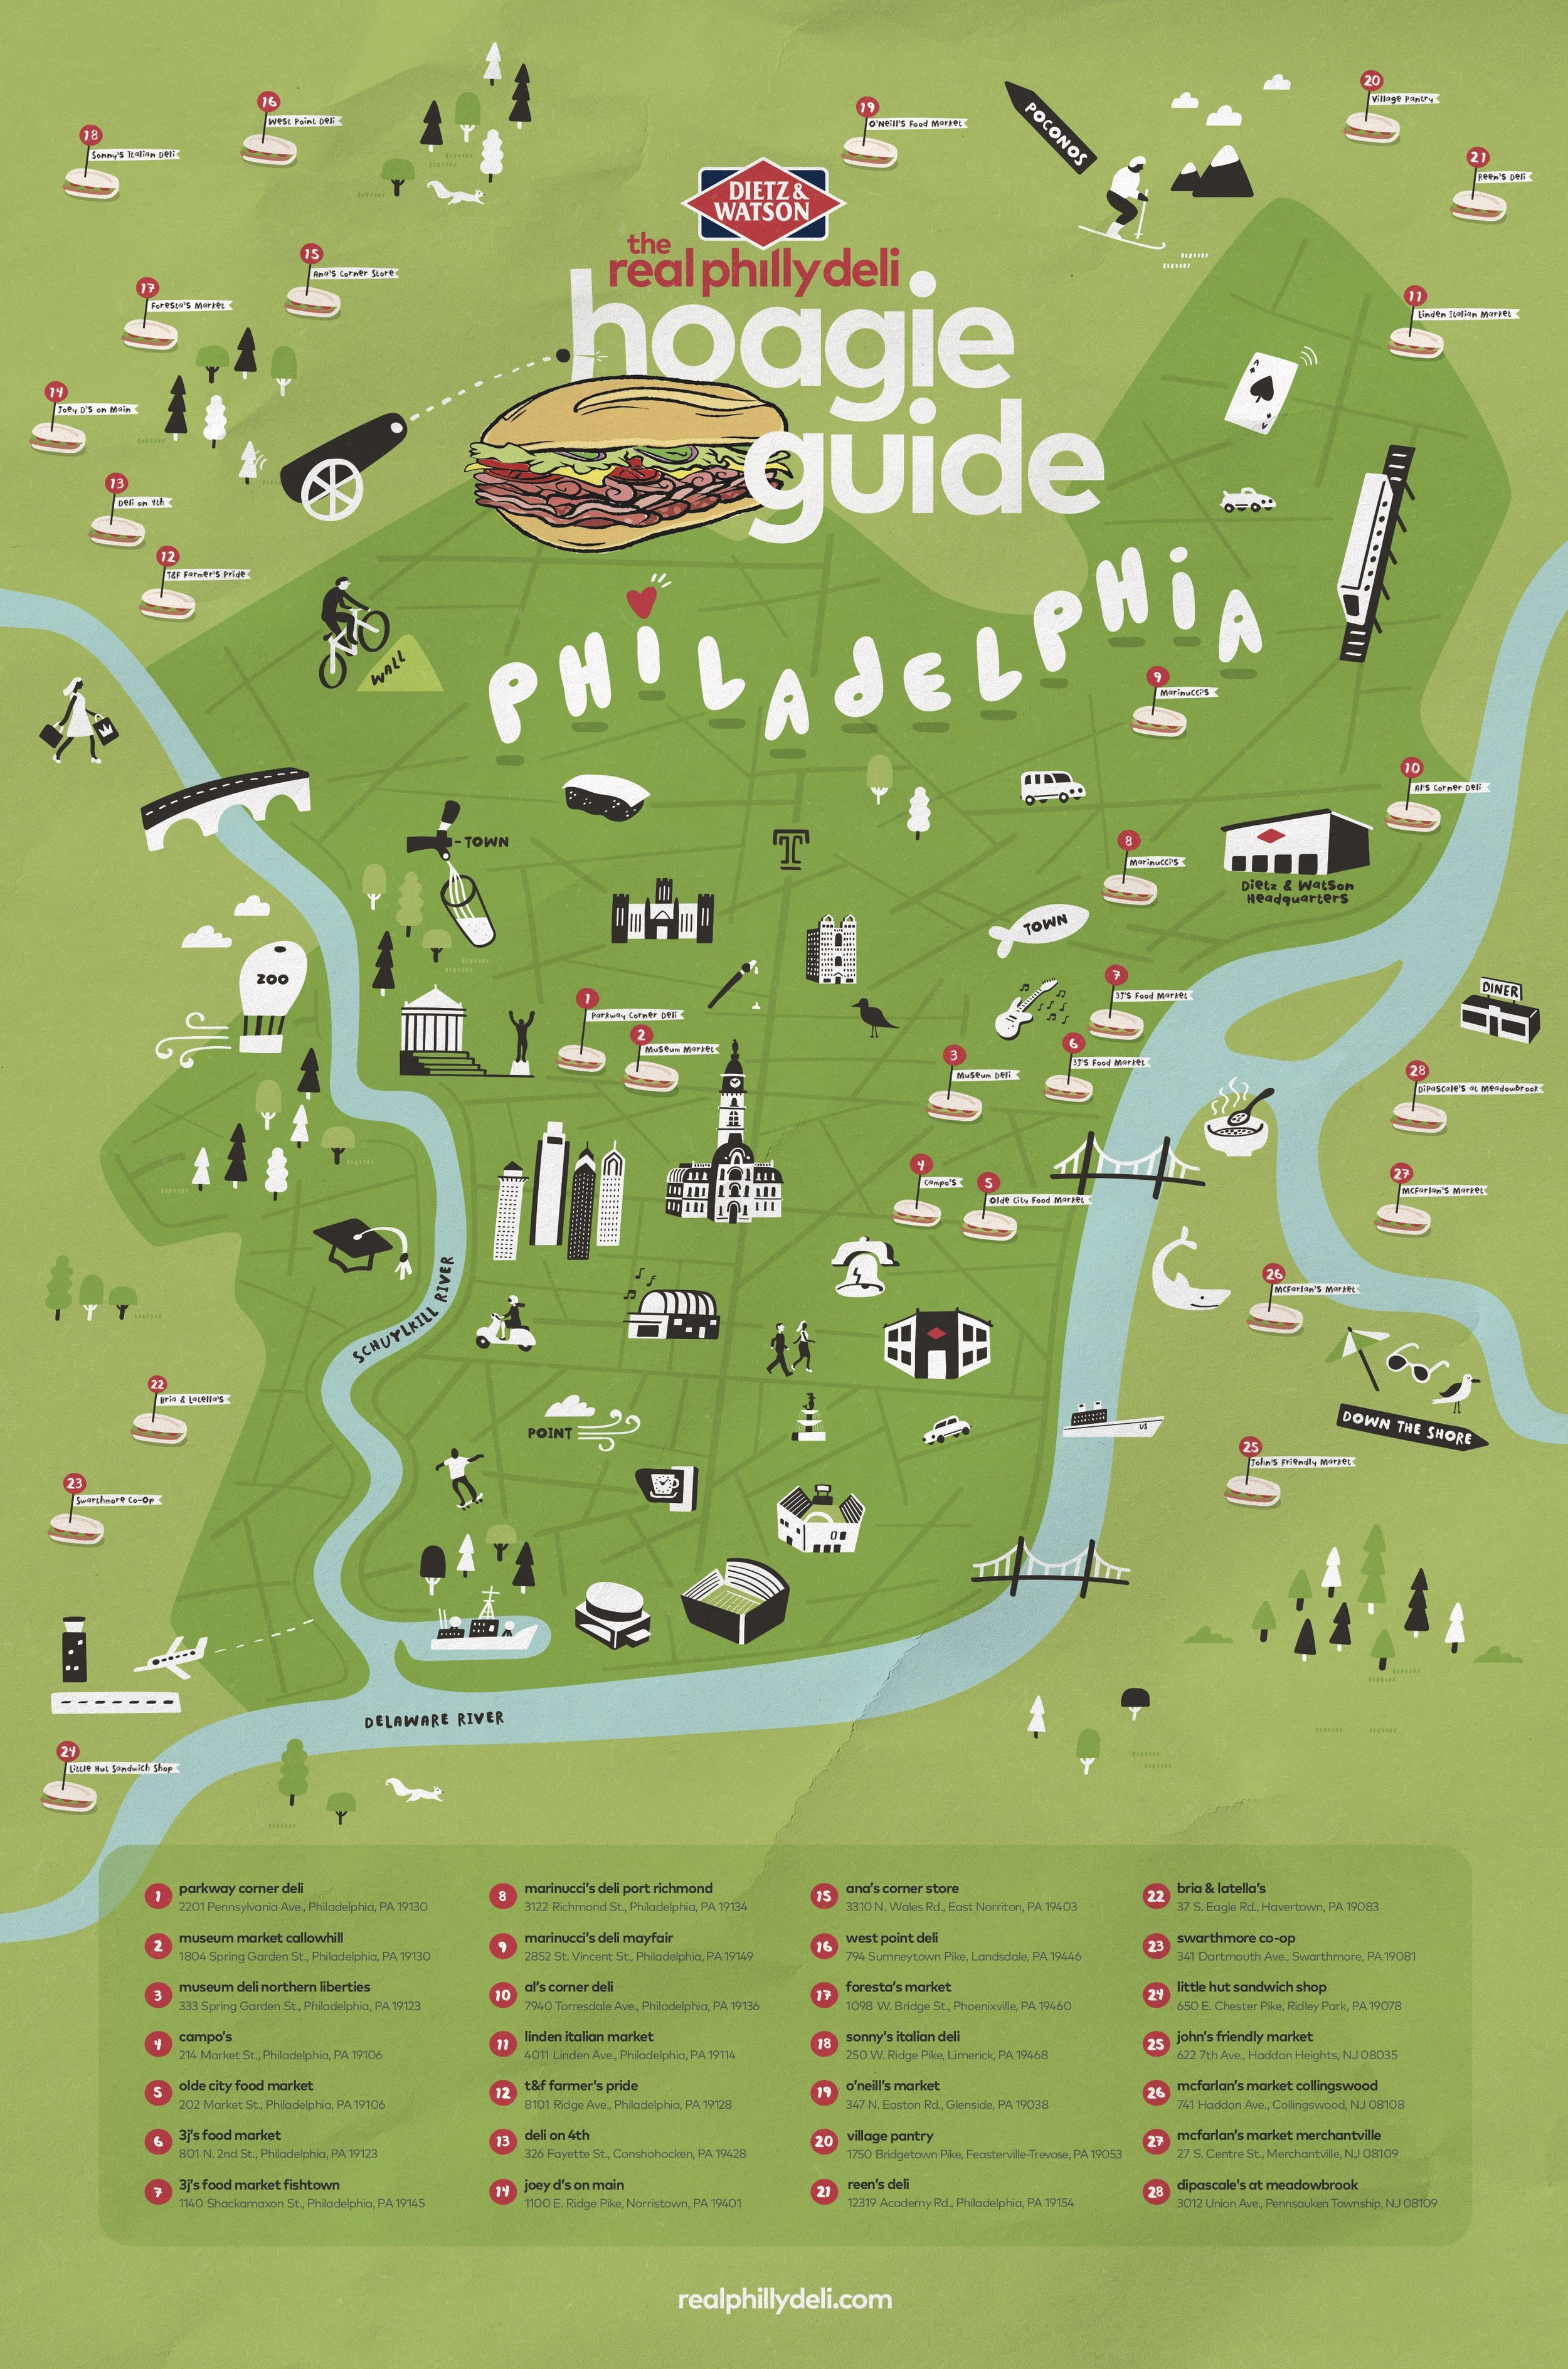 I Draw Maps Illustrated Pittsburgh Map on pittsburgh art map, pittsburgh black map, pittsburgh simple map, pittsburgh interactive map, pittsburgh aviation map, pittsburgh illustration, pittsburgh history, pittsburgh photography,